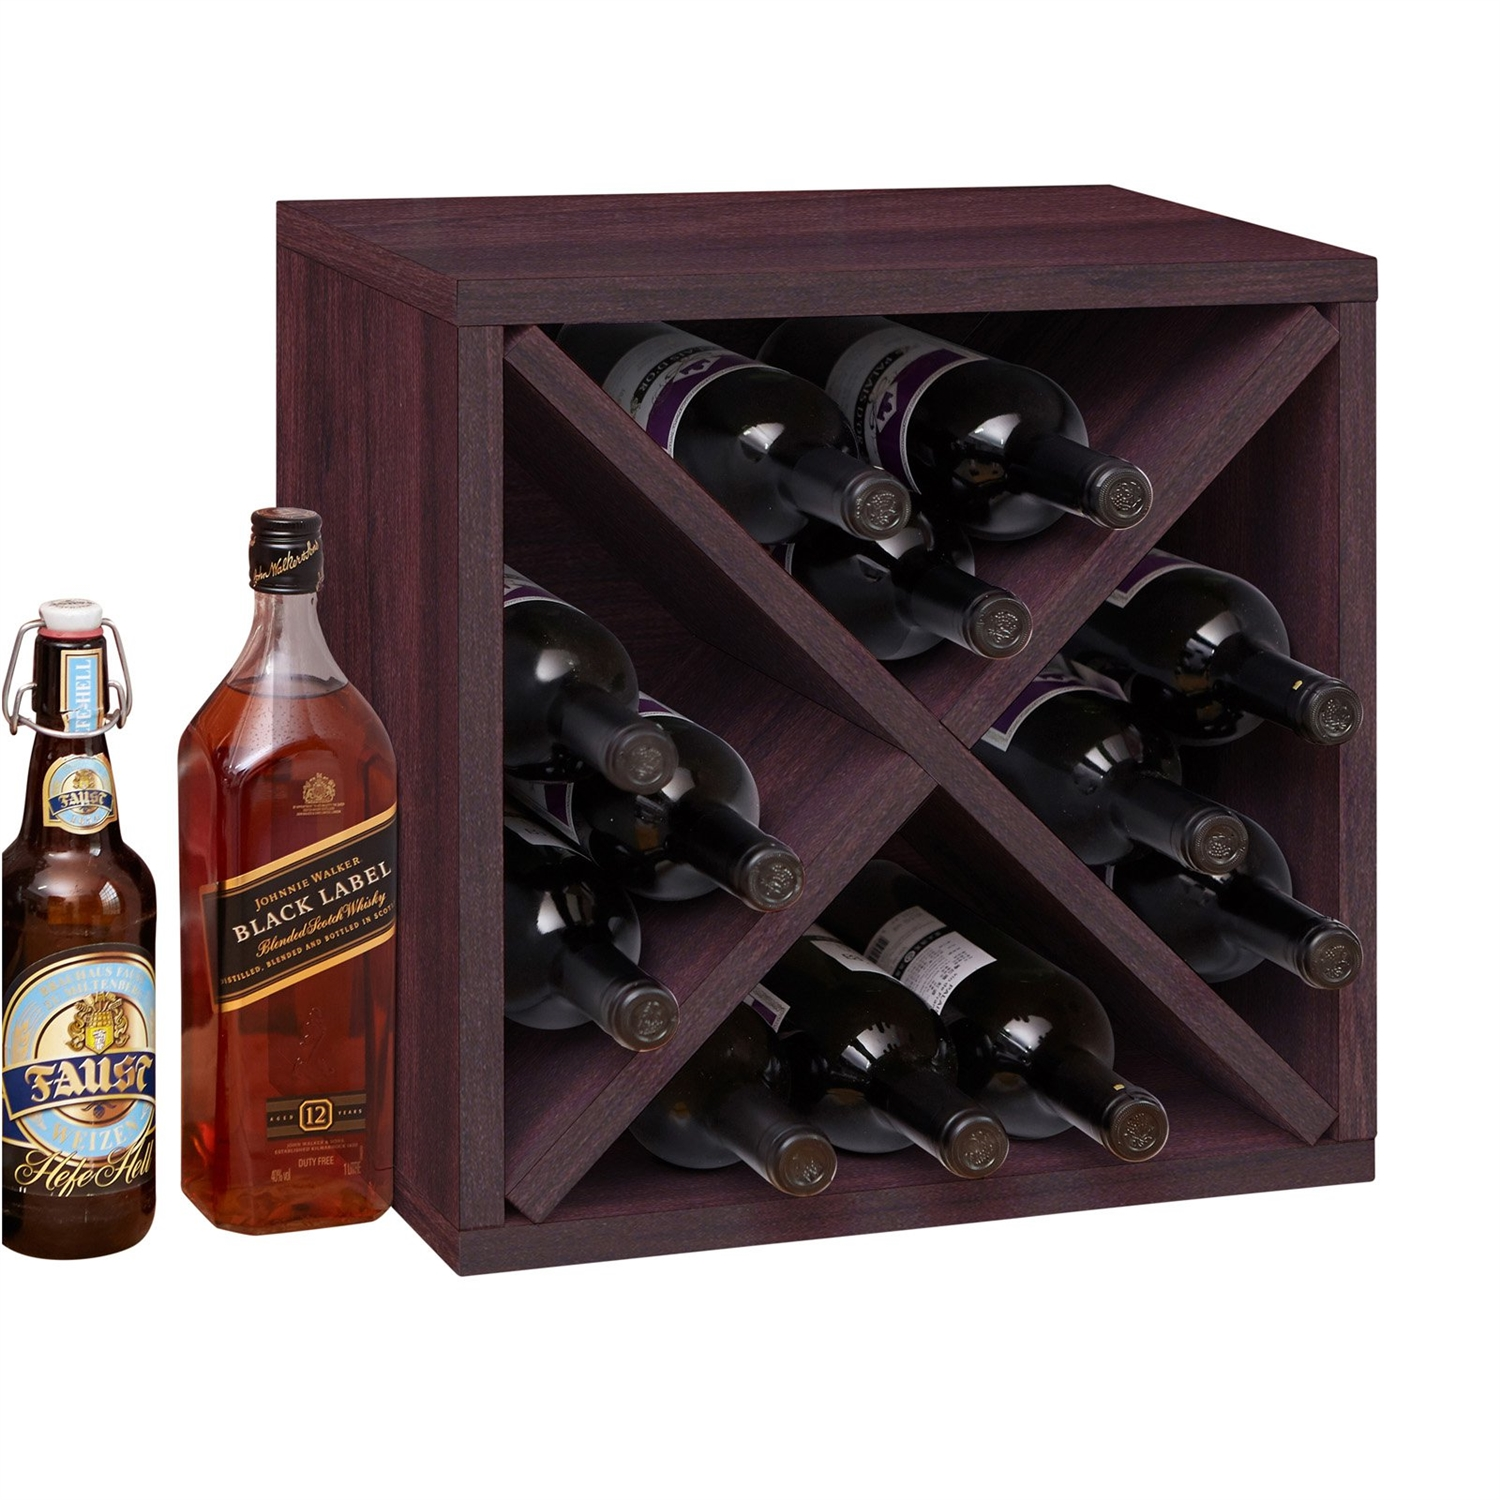 Stackable 12 bottle wine rack in espresso brown wood finish fastfurnishings com